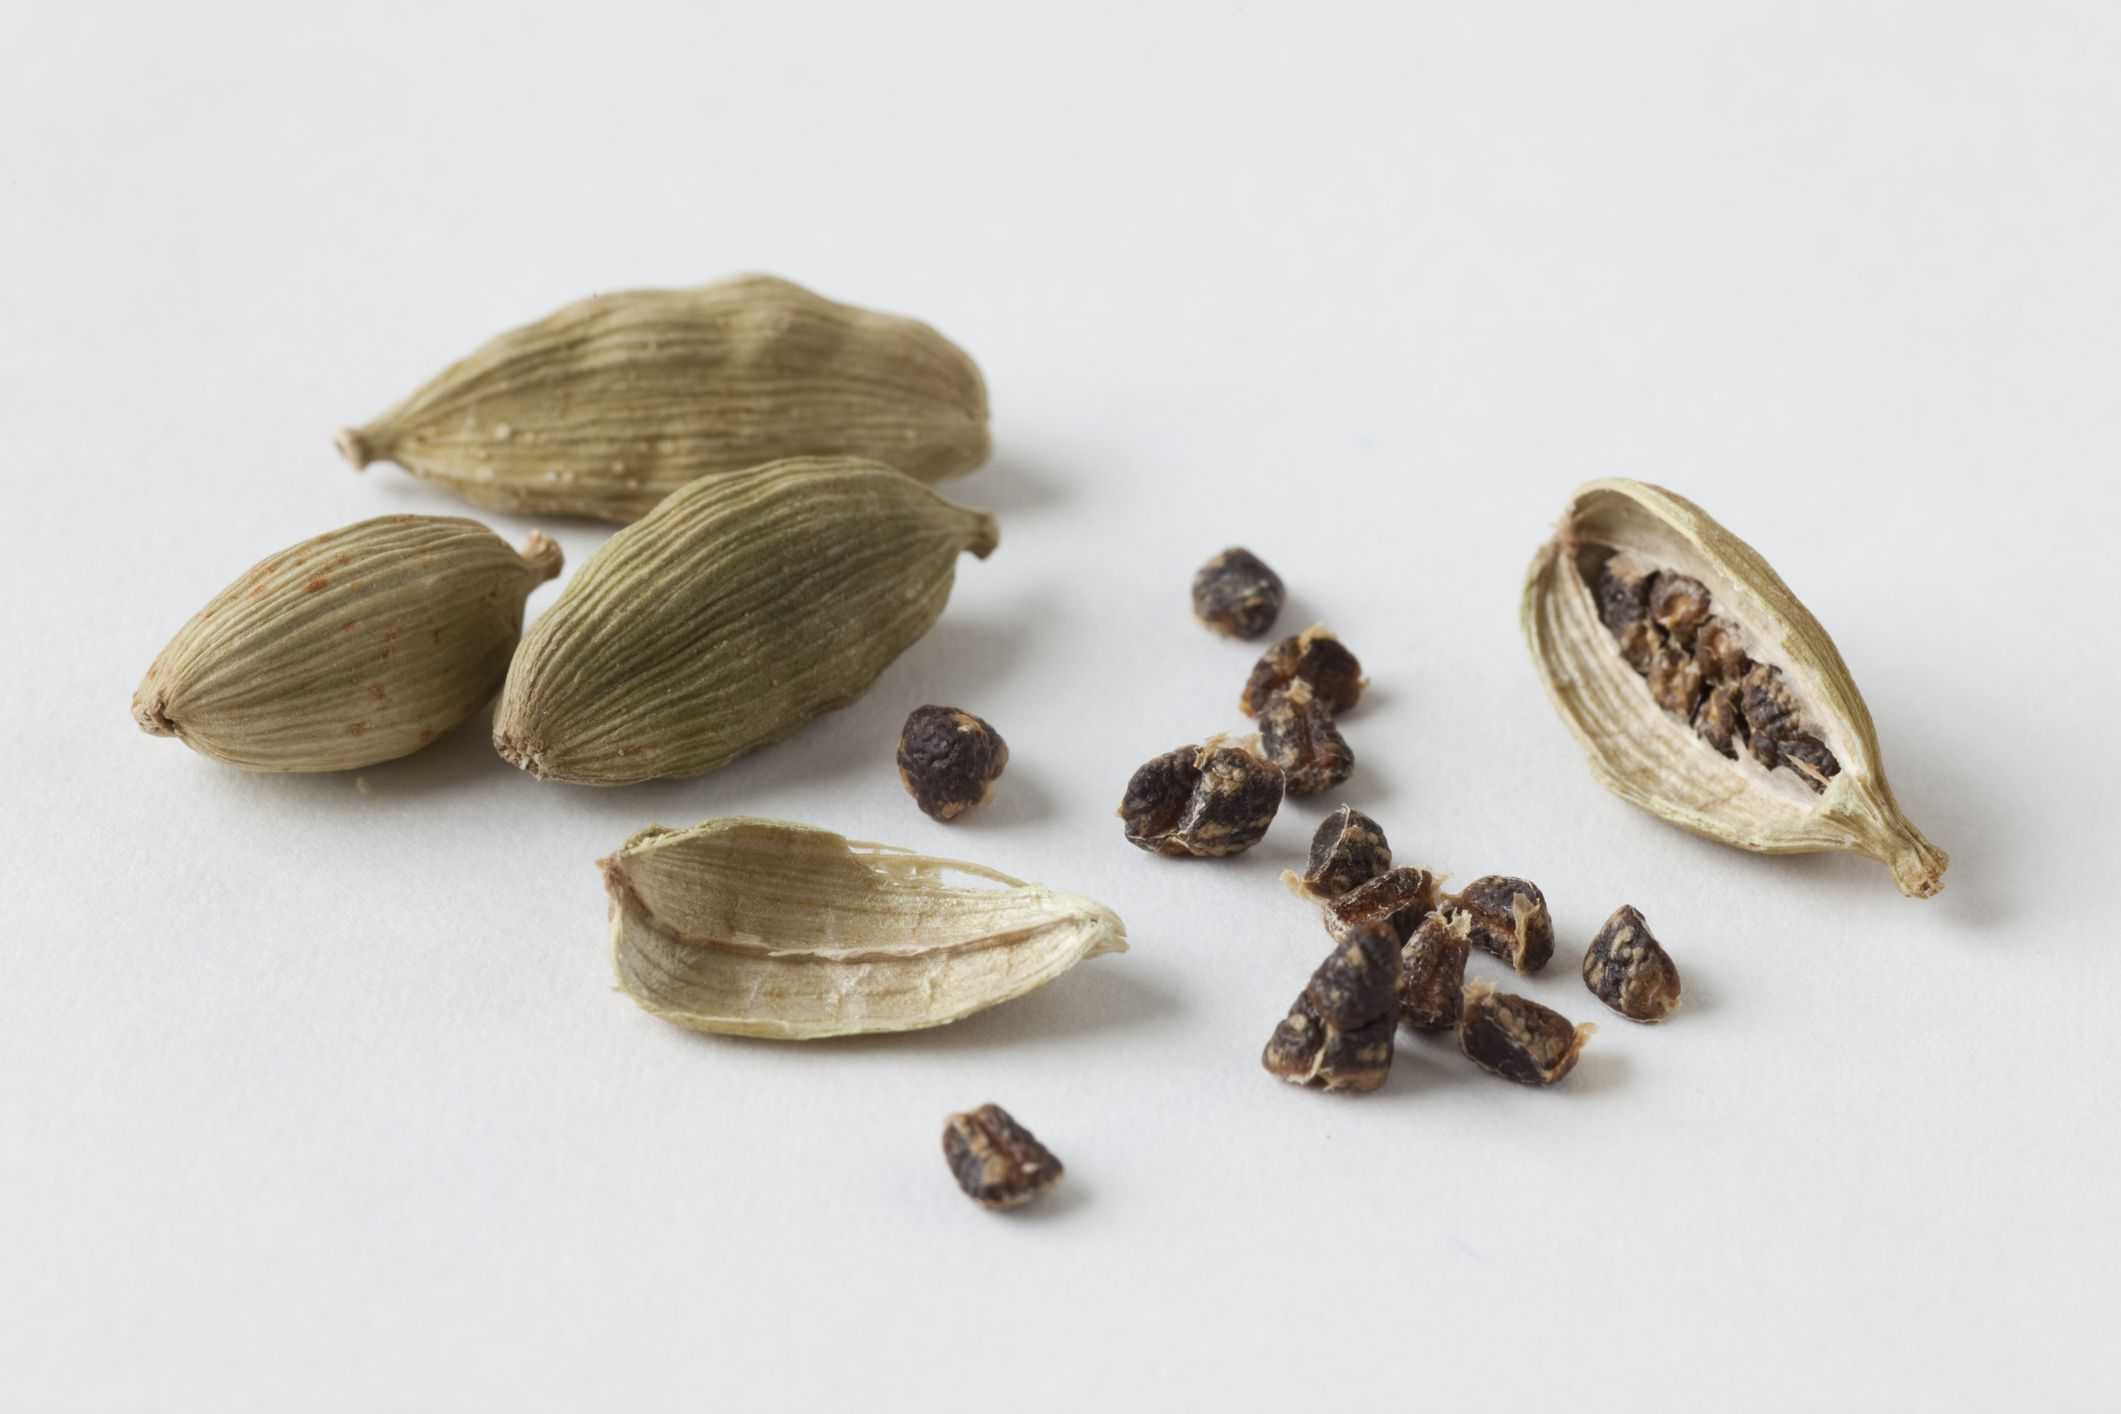 What Is Cardamom Or Cardamon